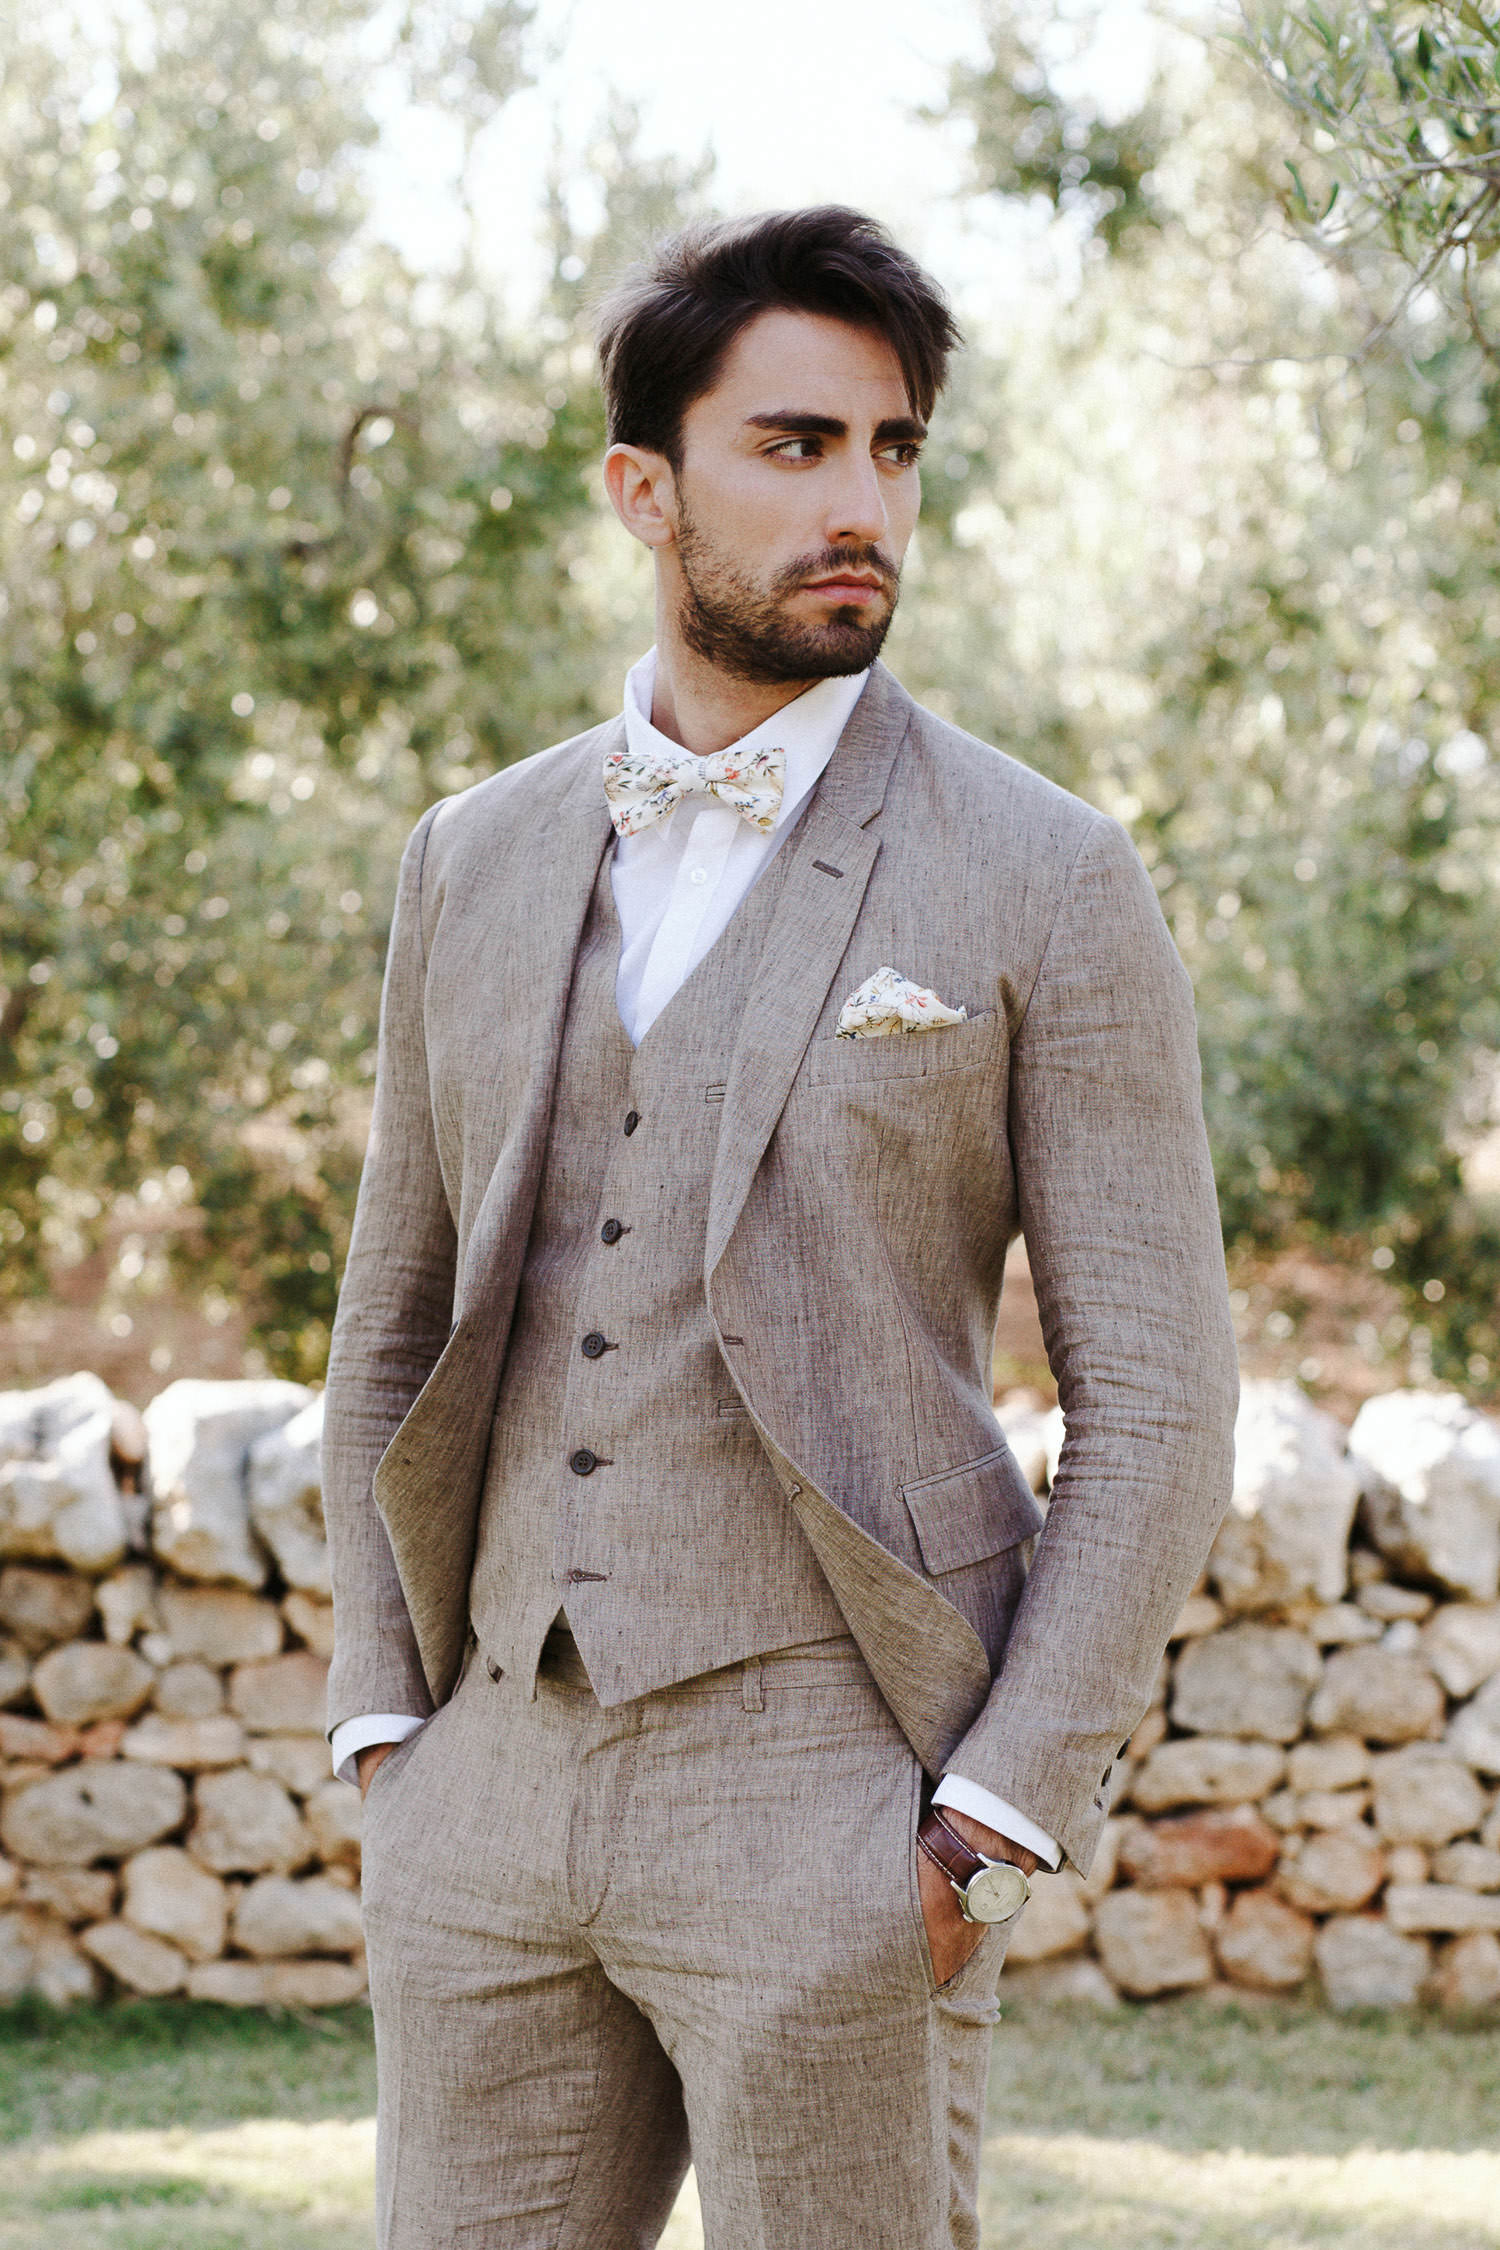 Handsome groom with a Linneo Archivable Clothing suit - Photo: Camilla Anchisi